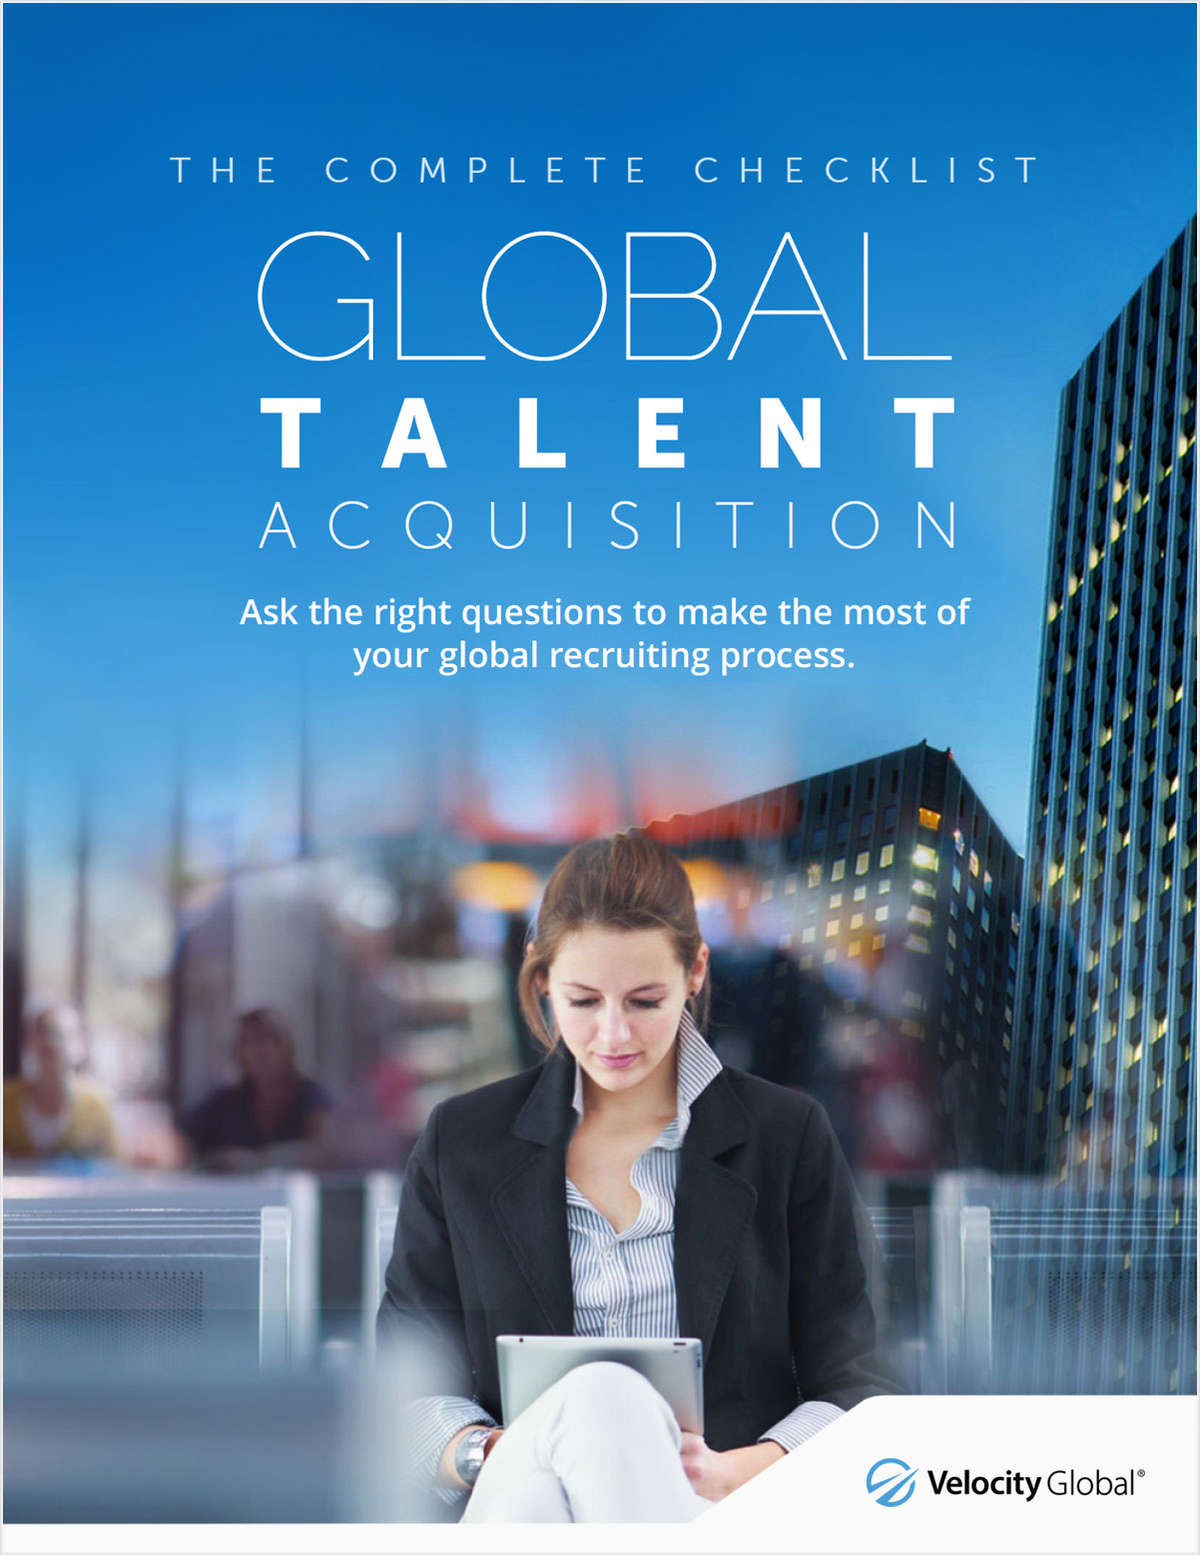 Global Talent Acquisition: The Complete Checklist